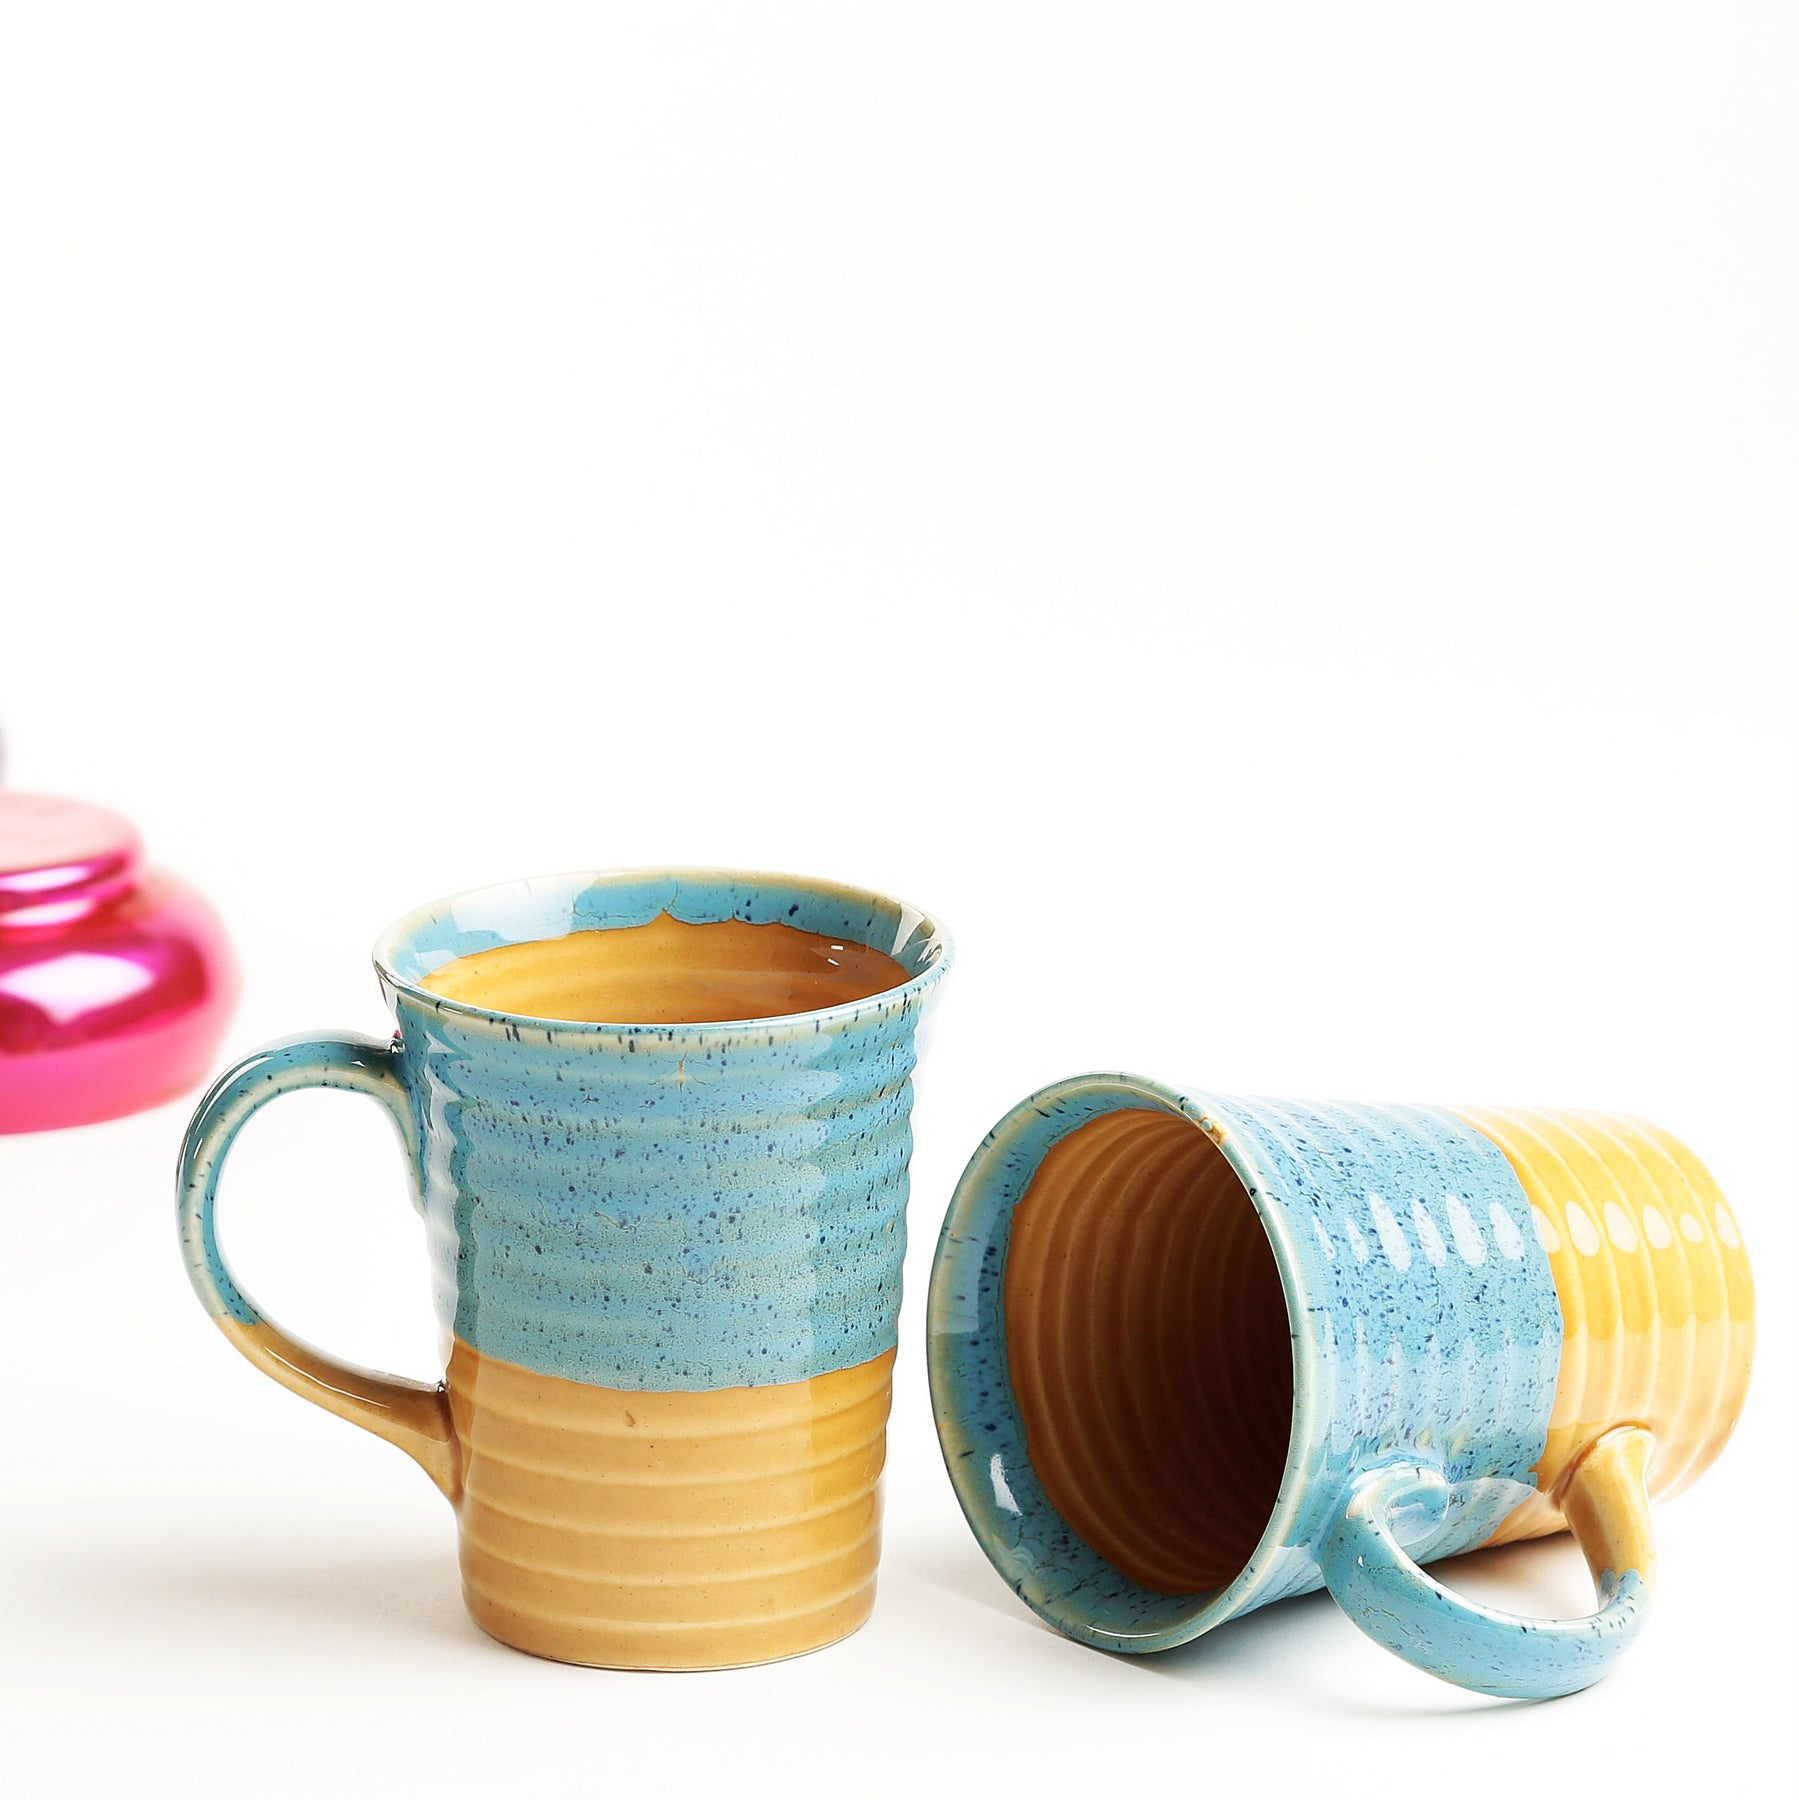 Studio Yellow and Turquoise Emric Coffee Mugs - Set of 2